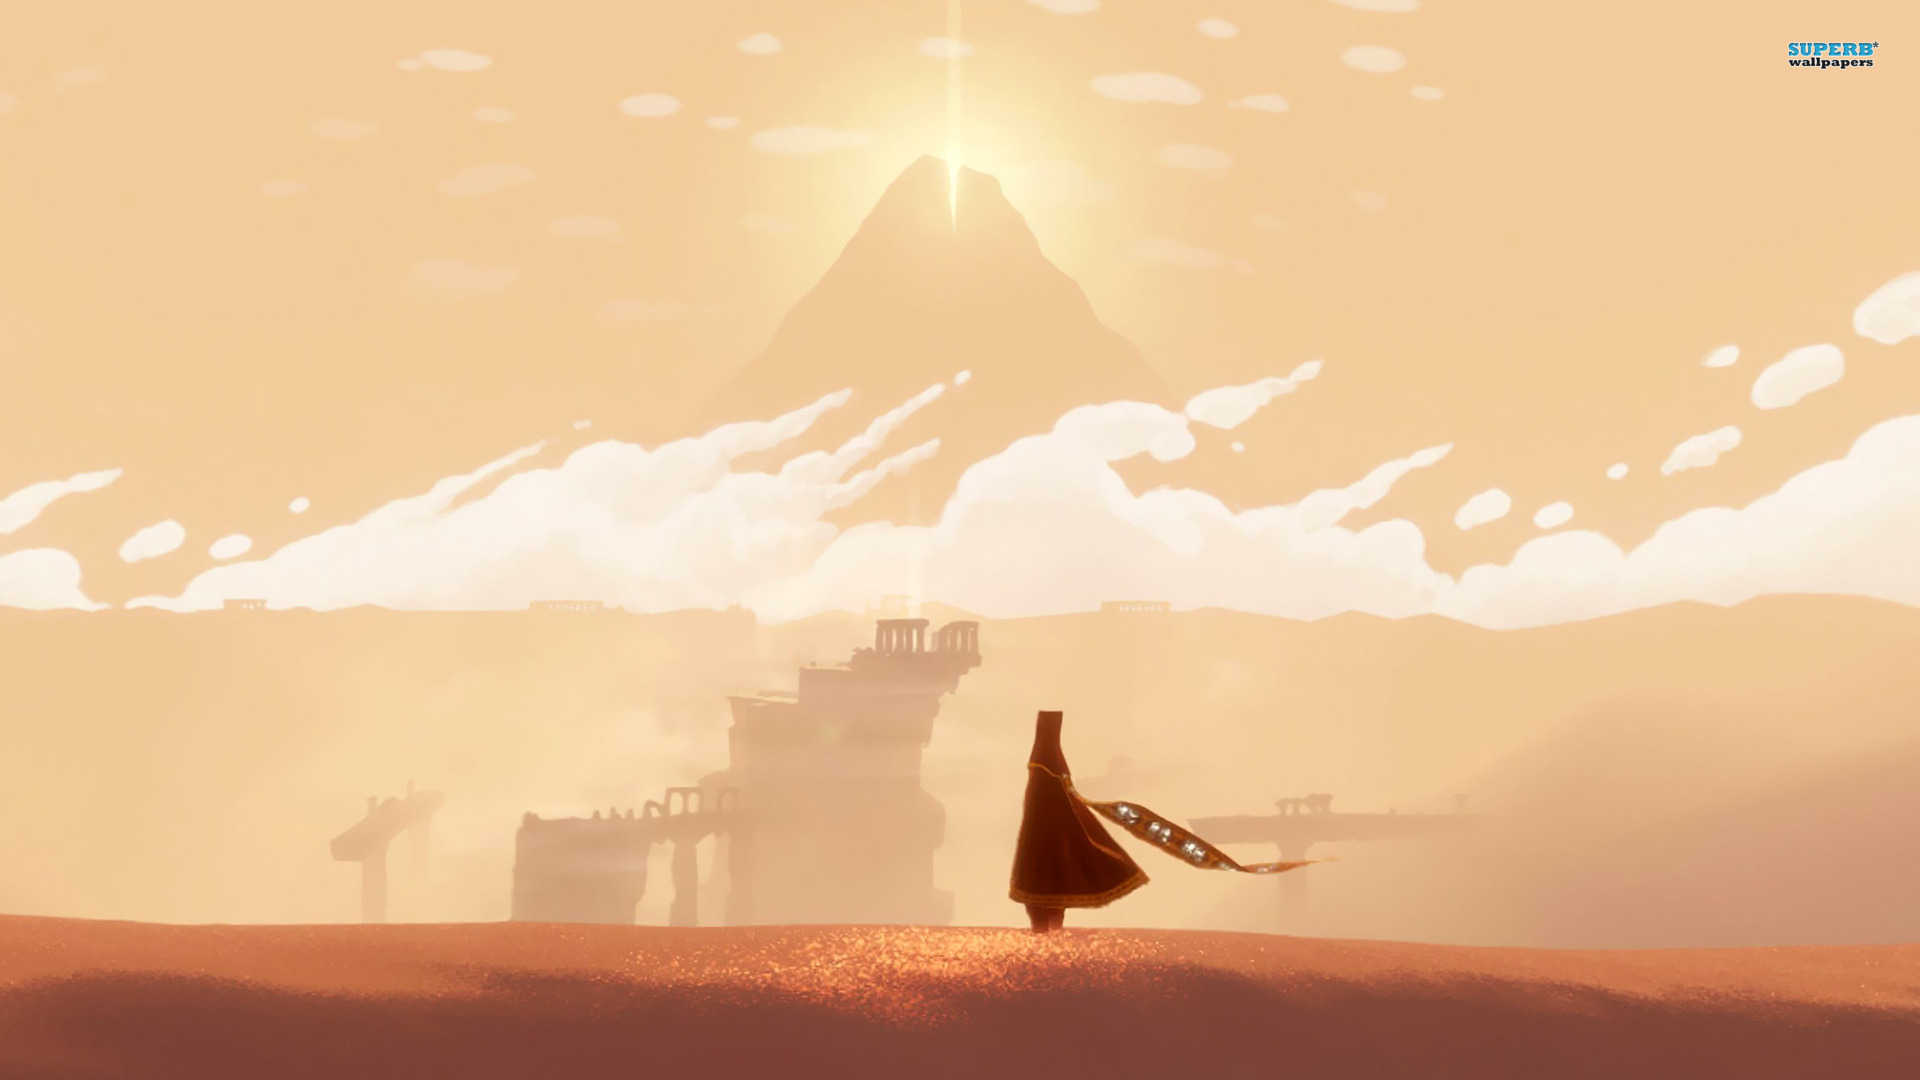 Journey wallpaper 1920x1080